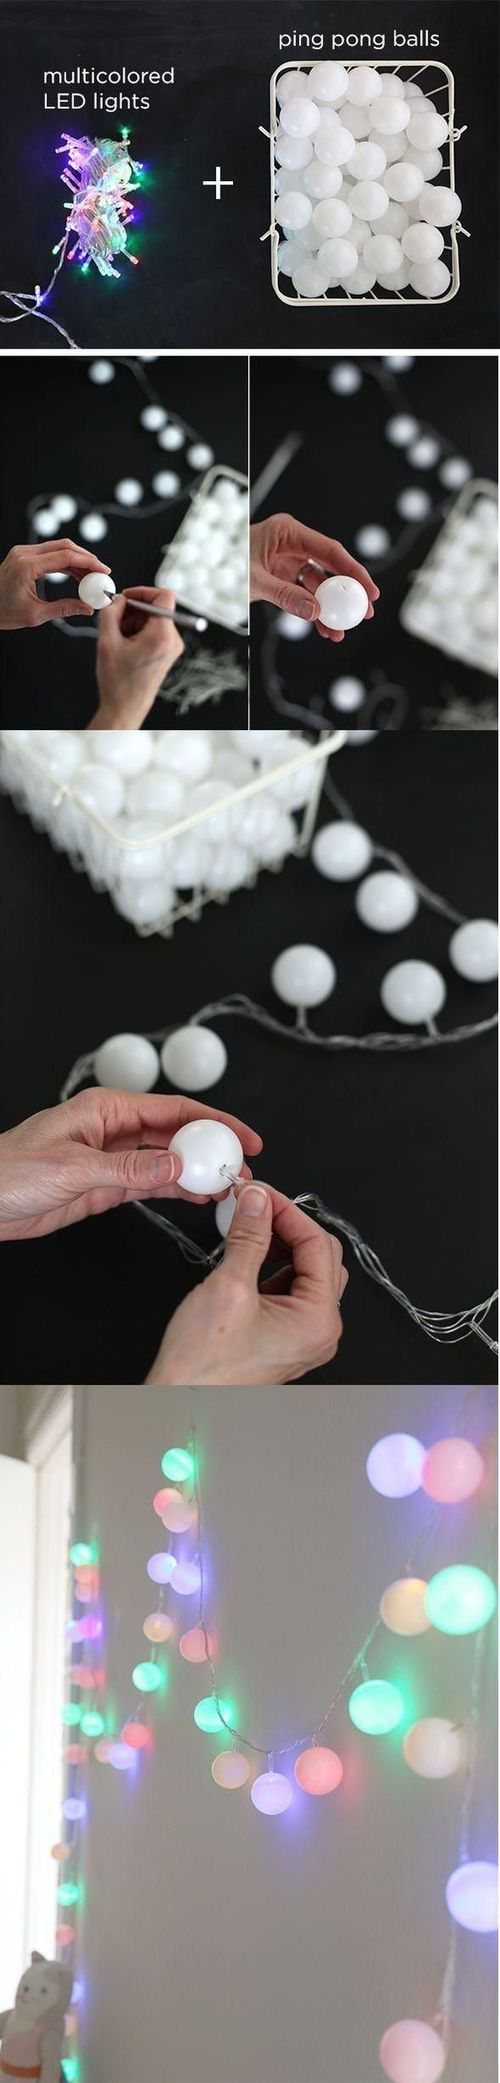 Reuse ping pong balls/home crafts/recycle craft/decor decorations